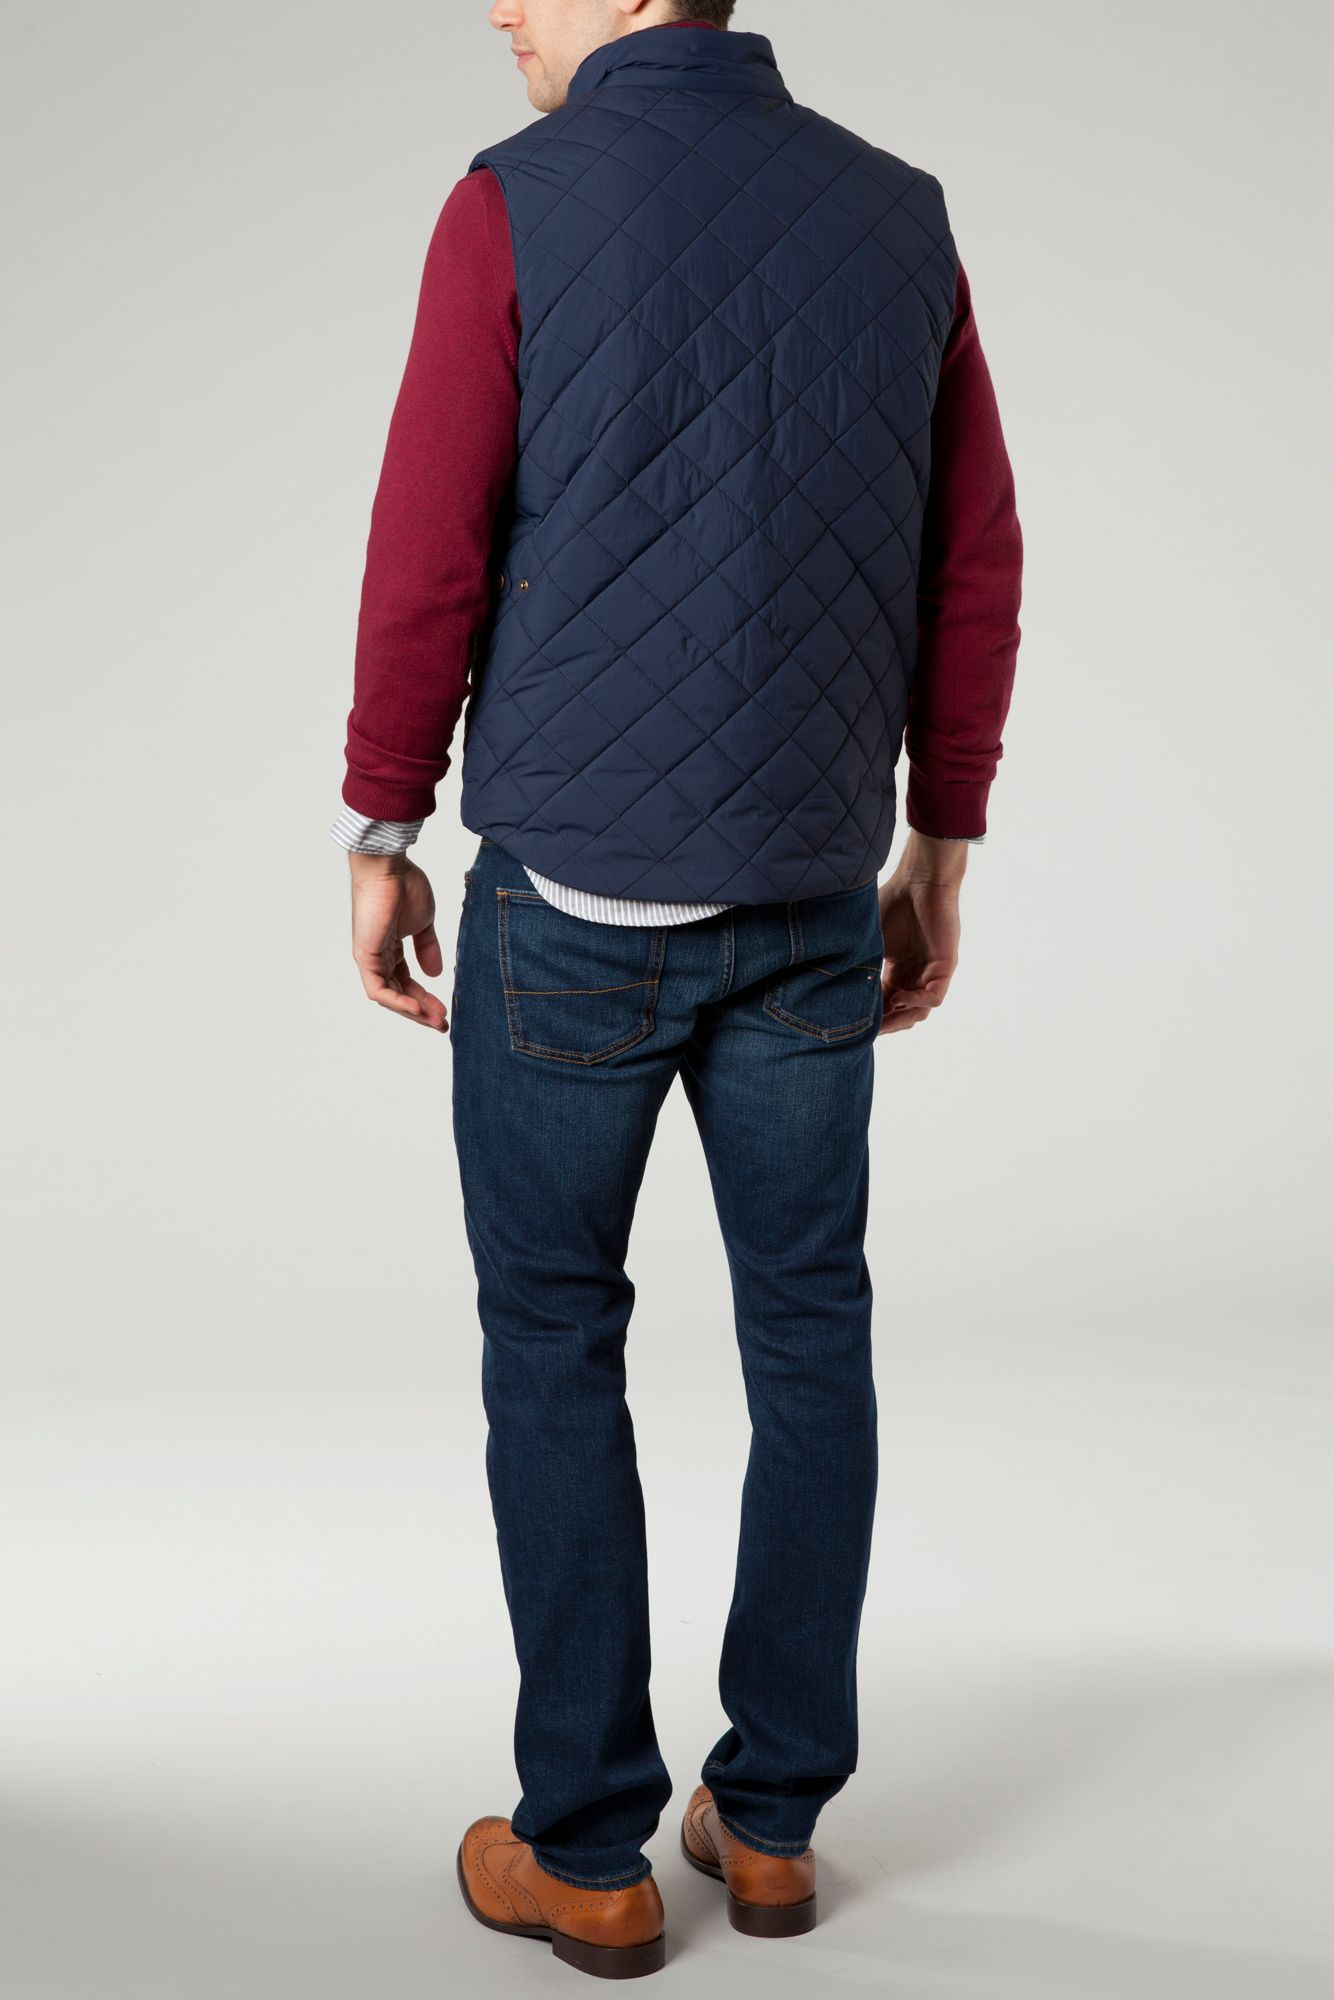 Lyst - Tommy hilfiger Quilted Browning Vest in Blue for Men : tommy hilfiger quilted vest - Adamdwight.com